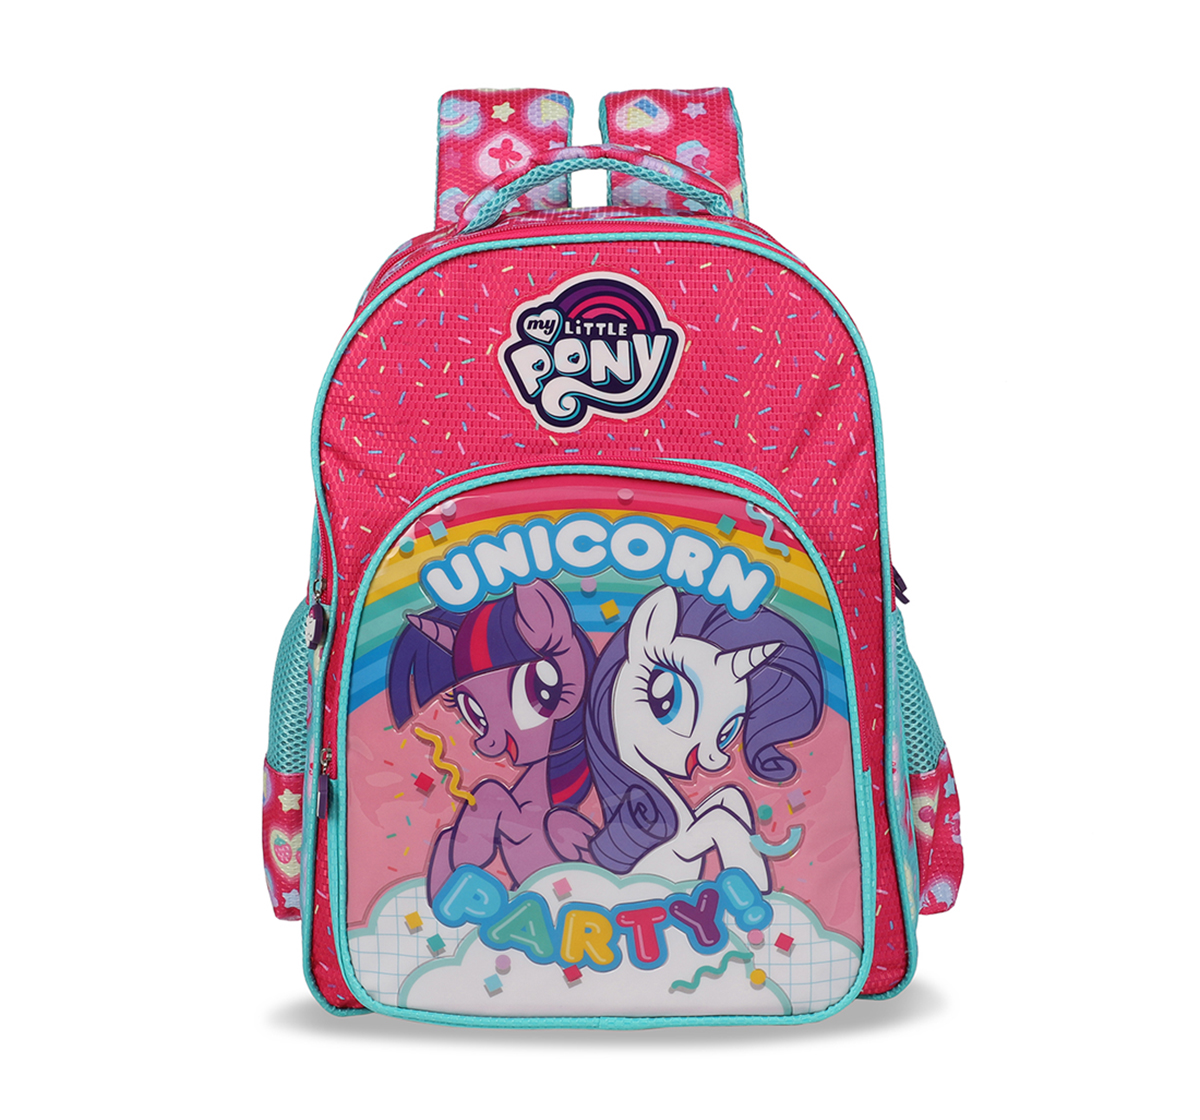 My Little Pony | My Little Pony My Little Pony Unicorn Party School Bag 36 Cm Bags for Girls age 3Y+ (Pink)